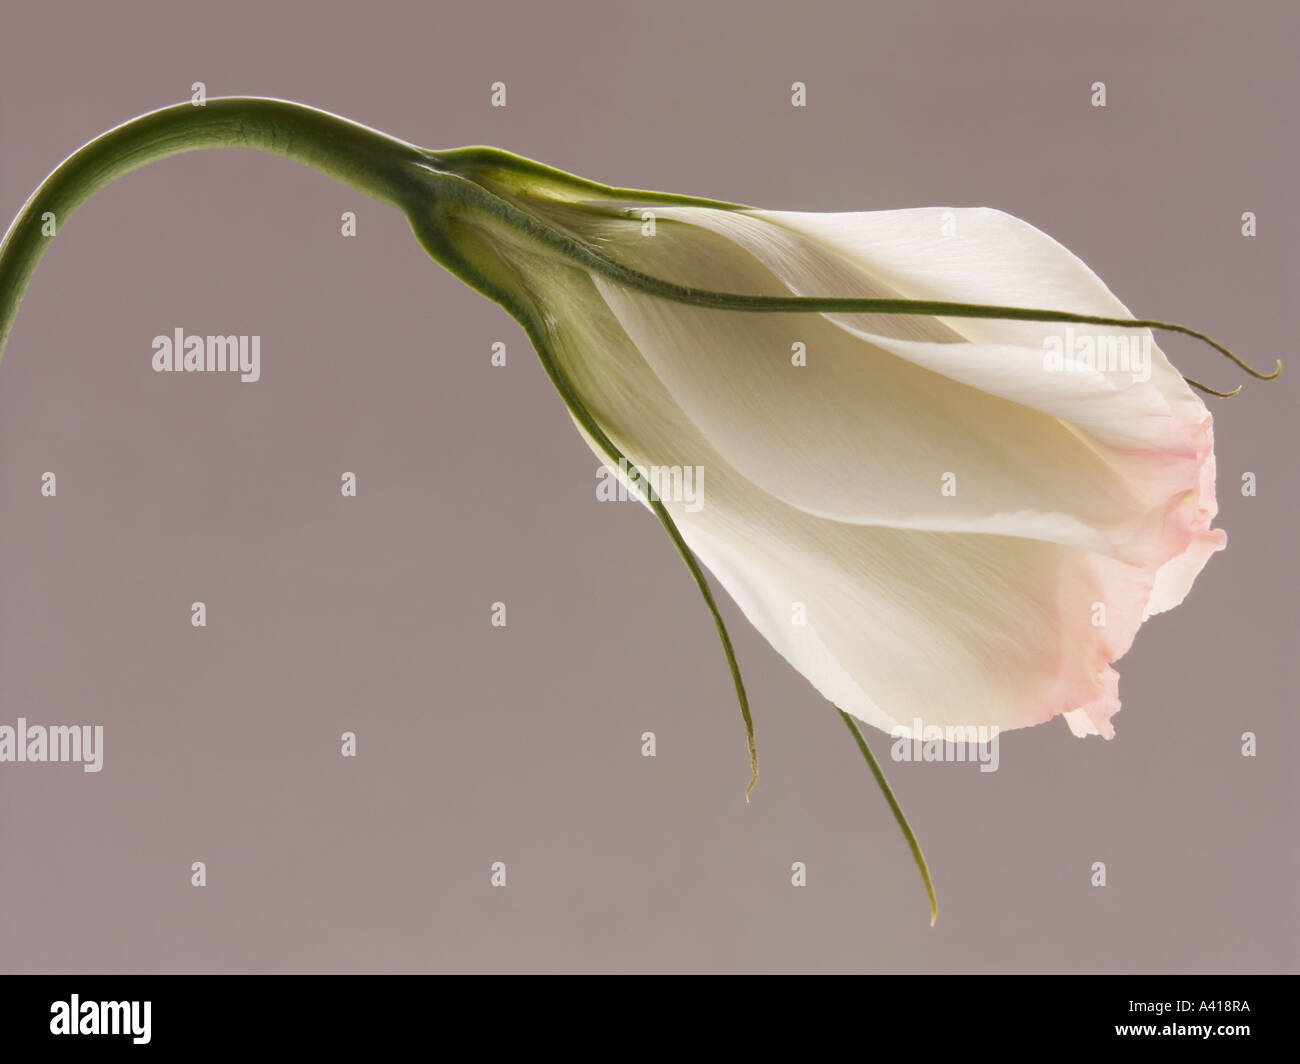 Close Up of Lisianthus Flower - White Petals Tipped Pale Pink - Stock Image